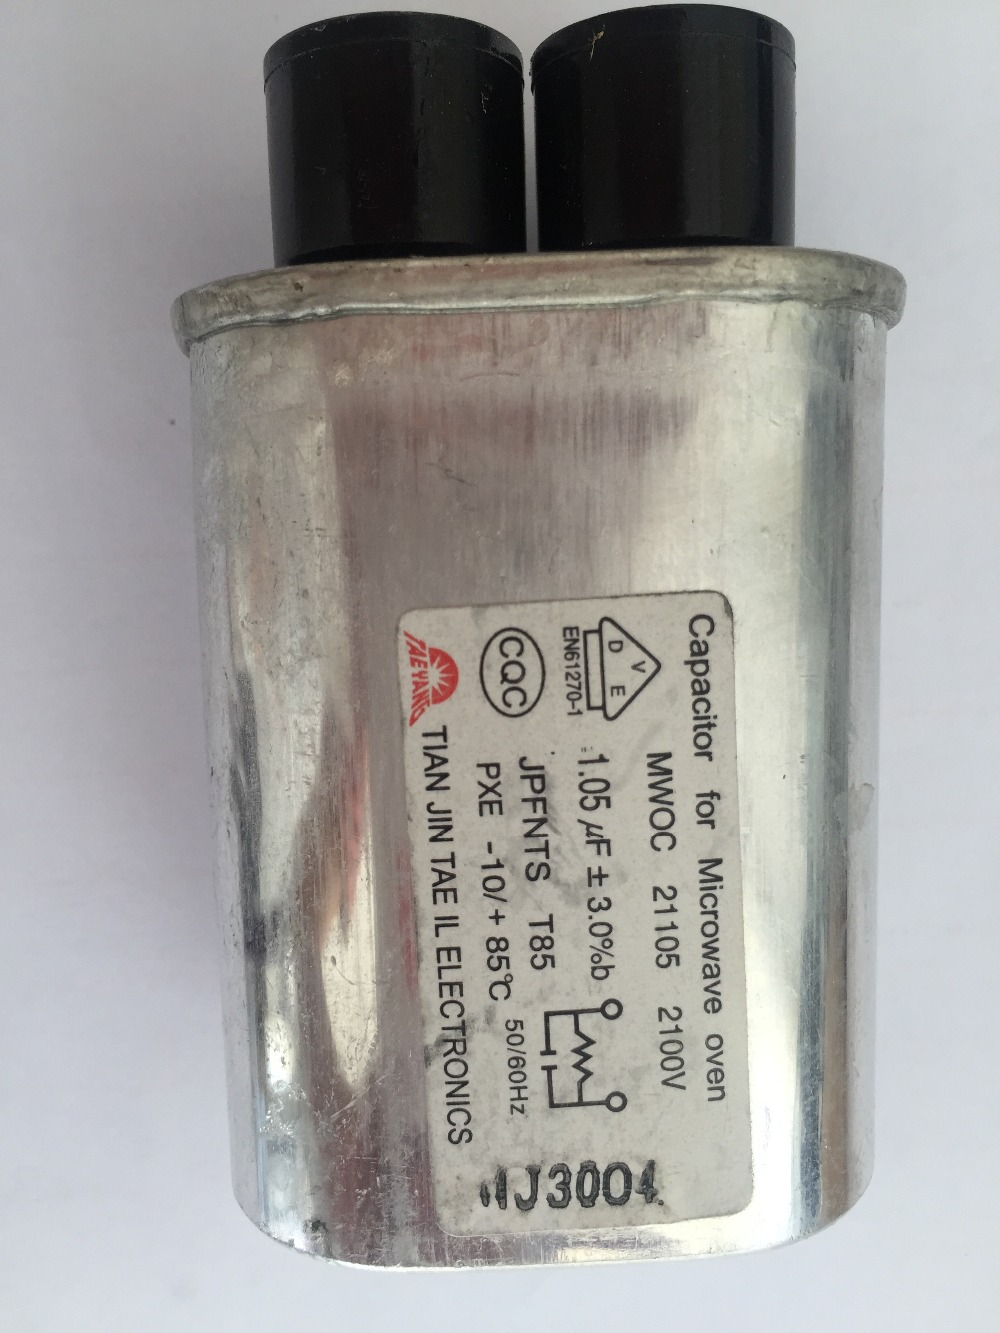 AC 2100V 50/60Hz Microwave Oven High Voltage HV Run Capacitor 1.0UF 0.91UF 0.95UF 1.05UF 2100V цена